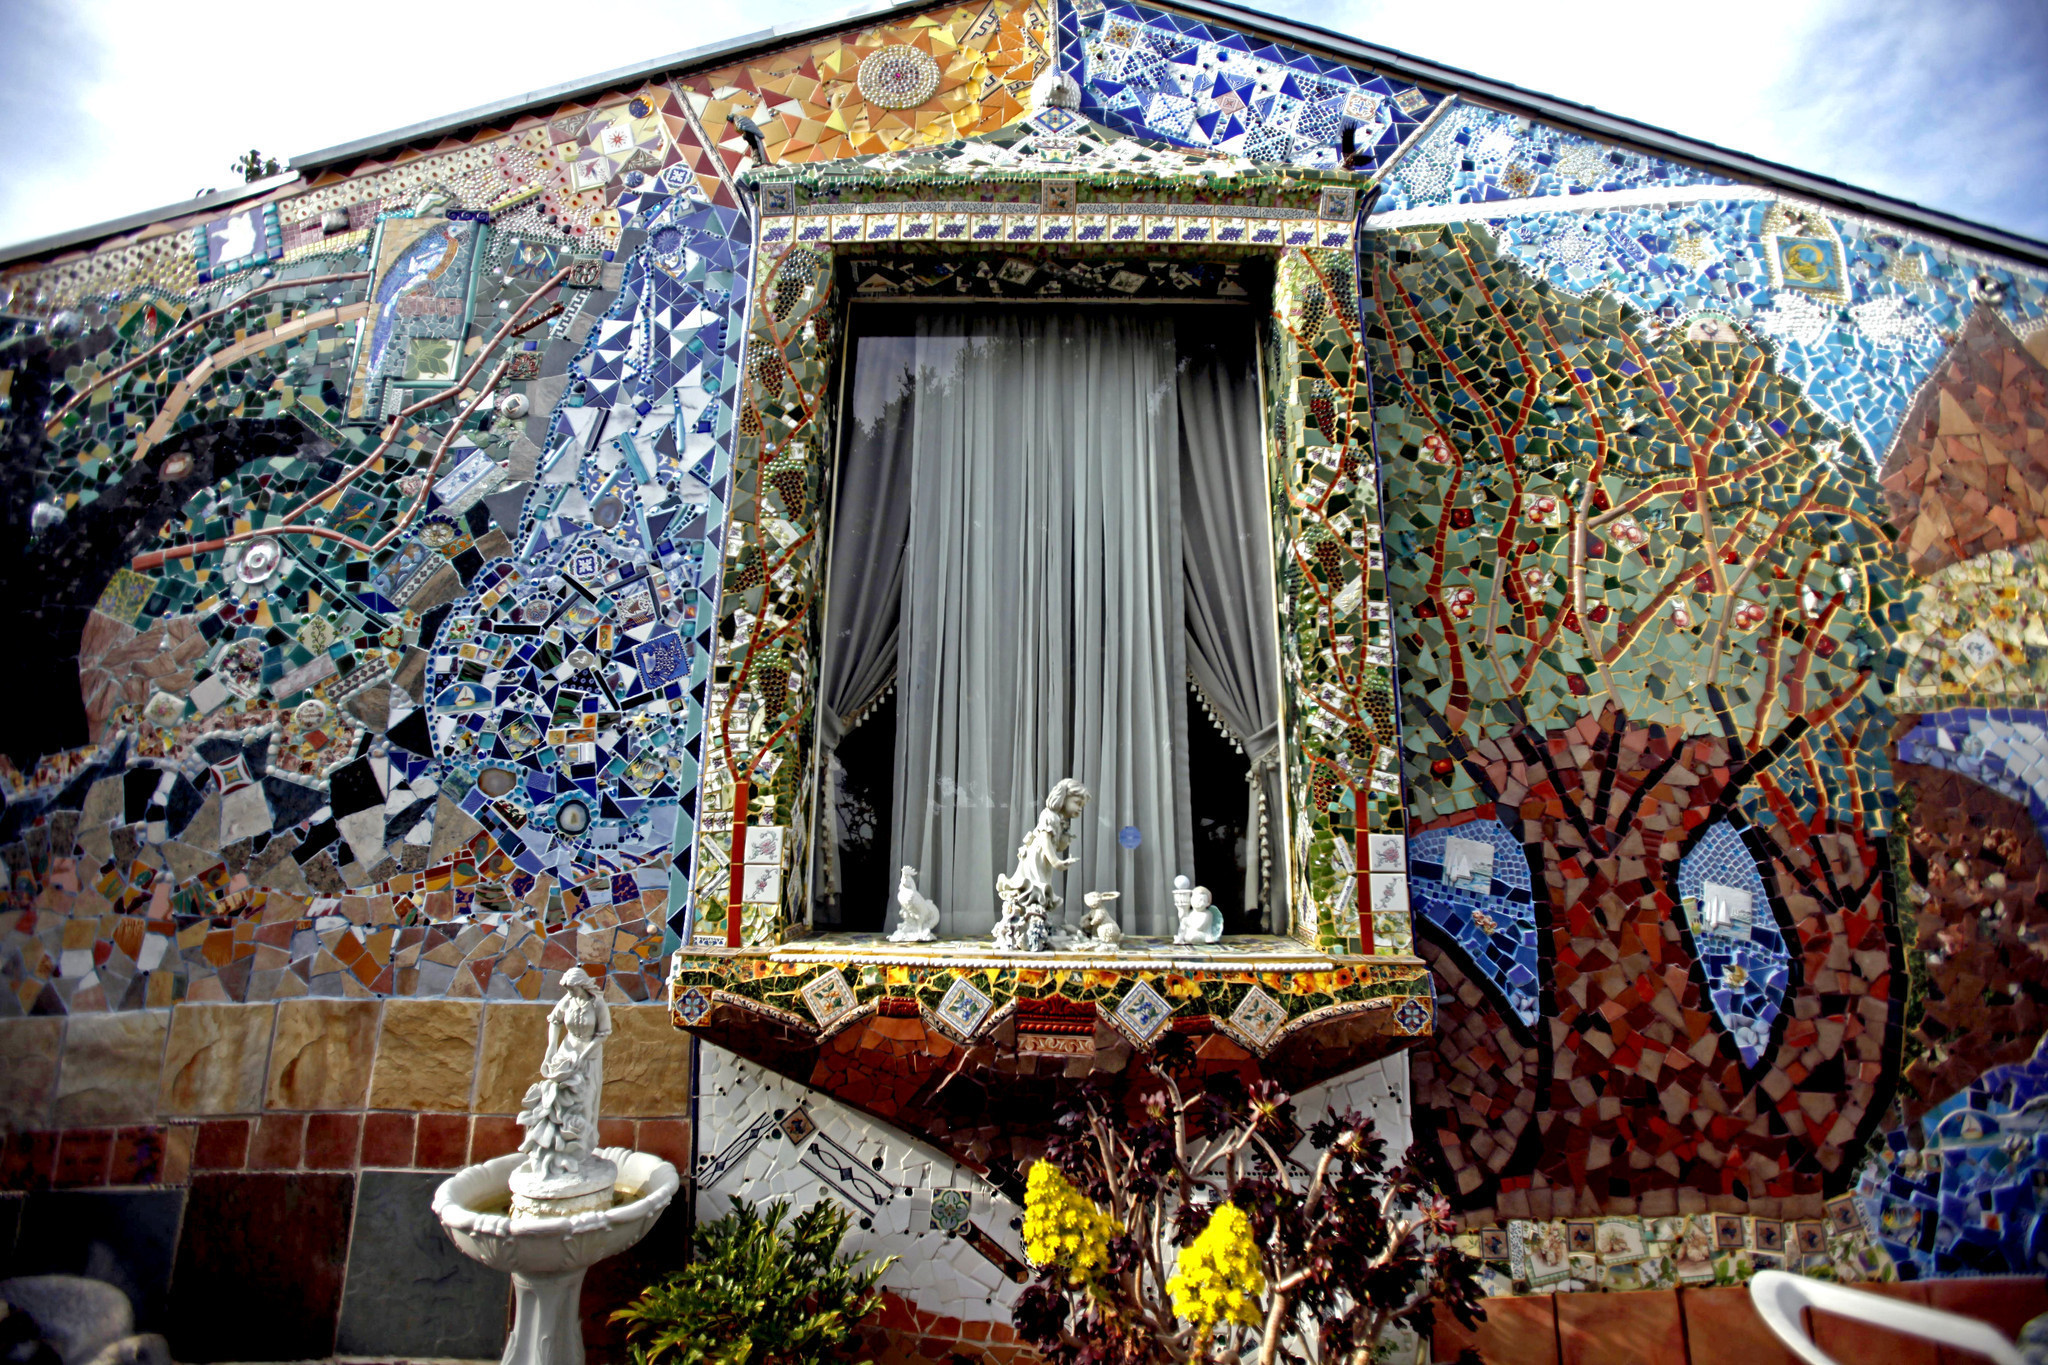 A Mosaic Loving Family S Journey Of Many Tiles La Times